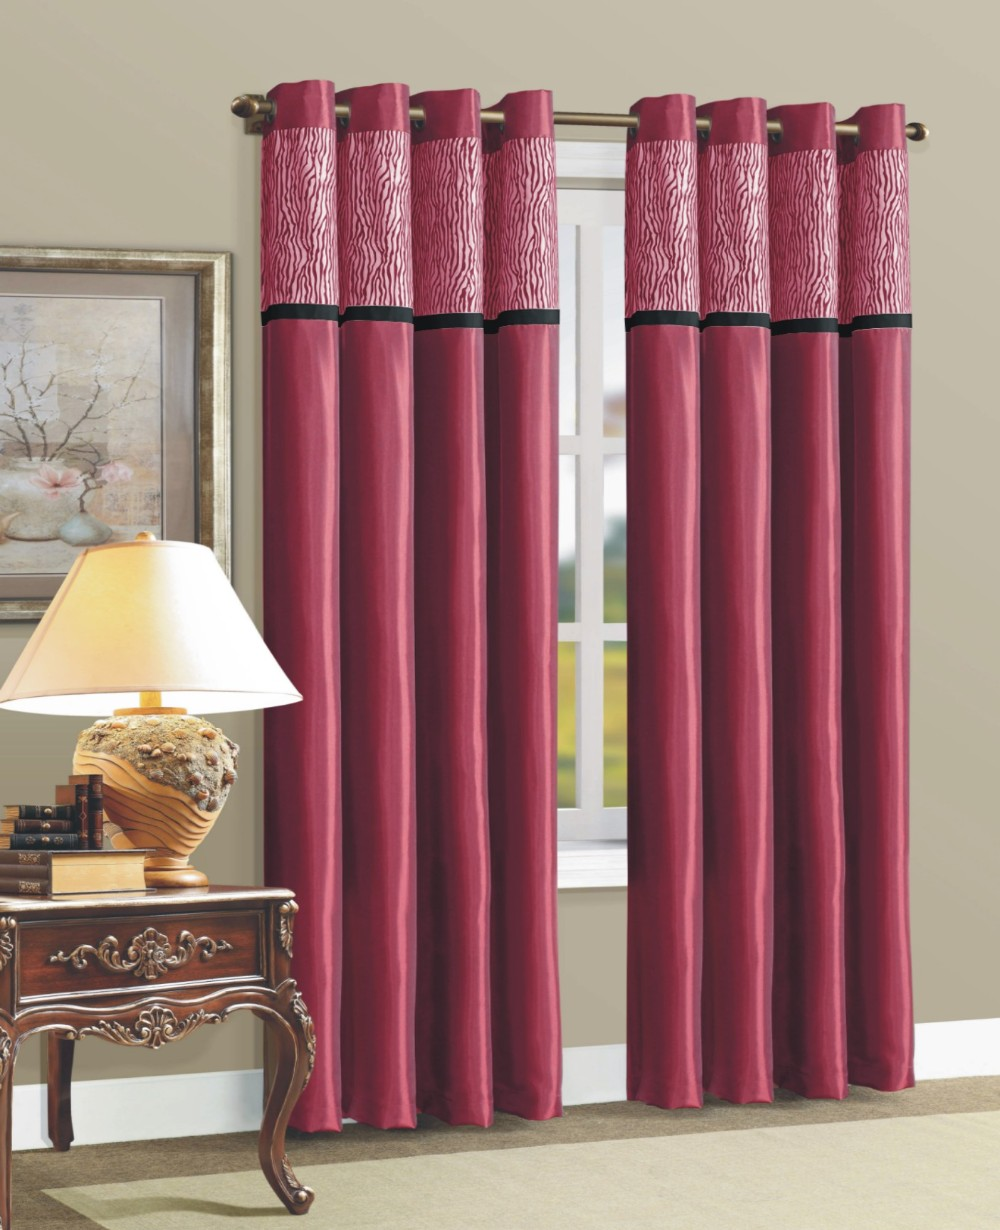 Silk Curtains For Living Room 1pc Faux Silk Solid Panel Curtains Designs With 8 Grommets Living